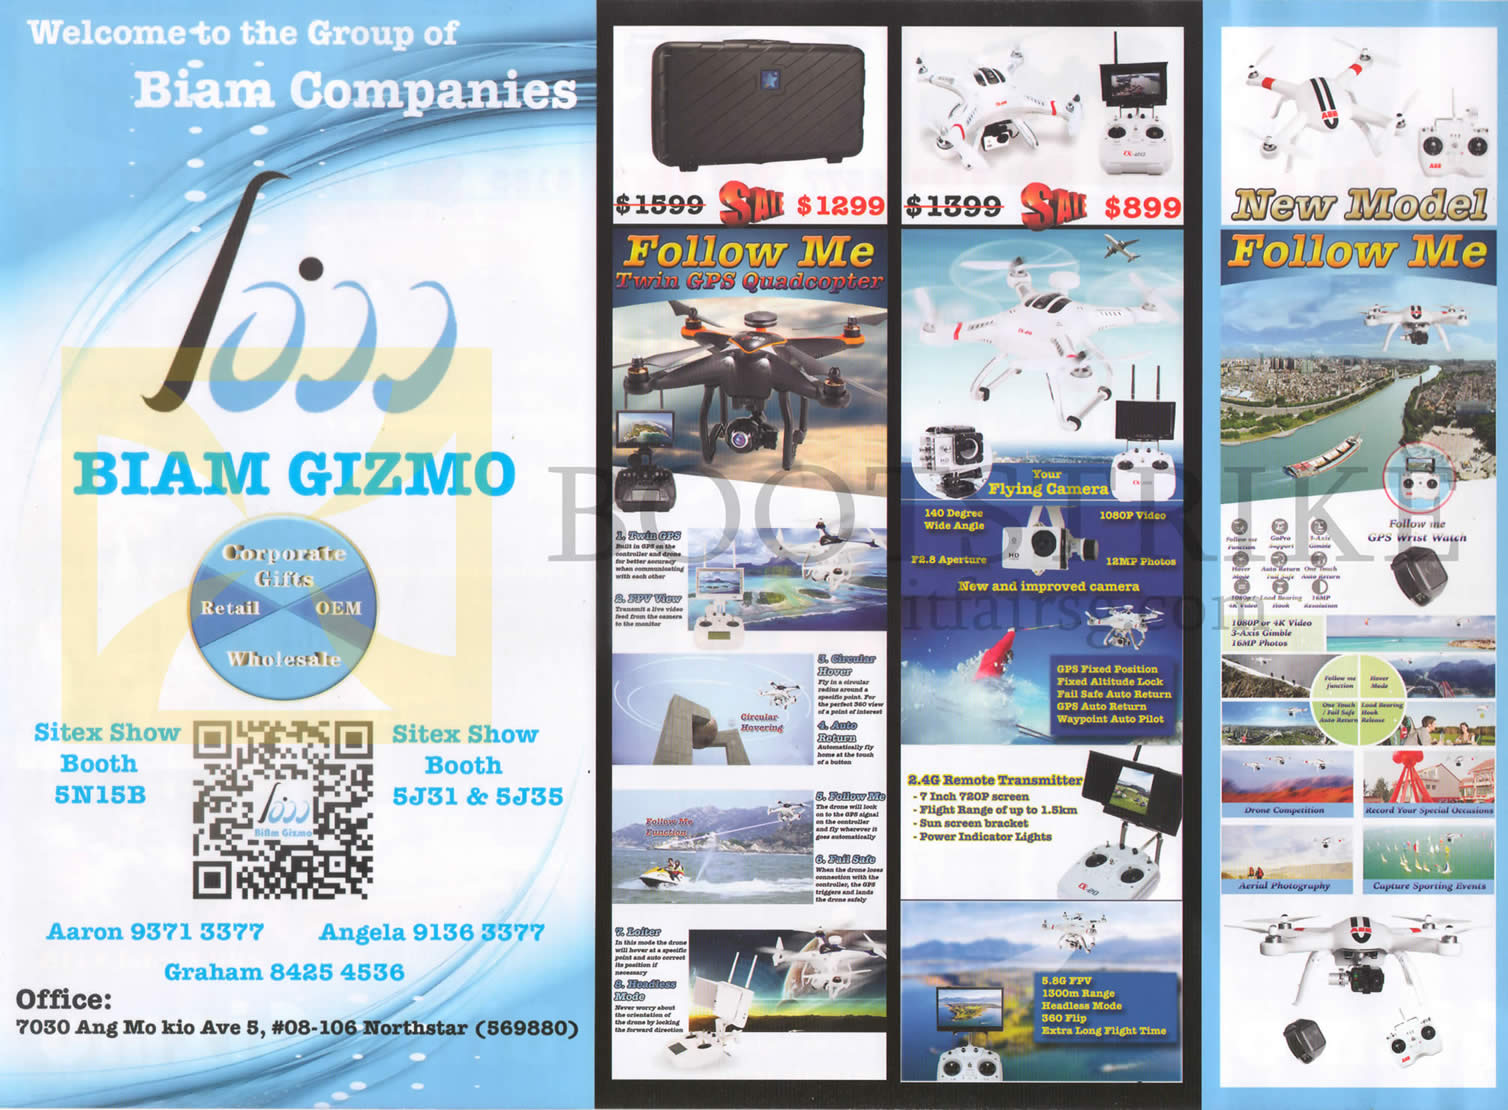 SITEX 2015 price list image brochure of Biam Gizmo Quadcopters Follow Me, Features